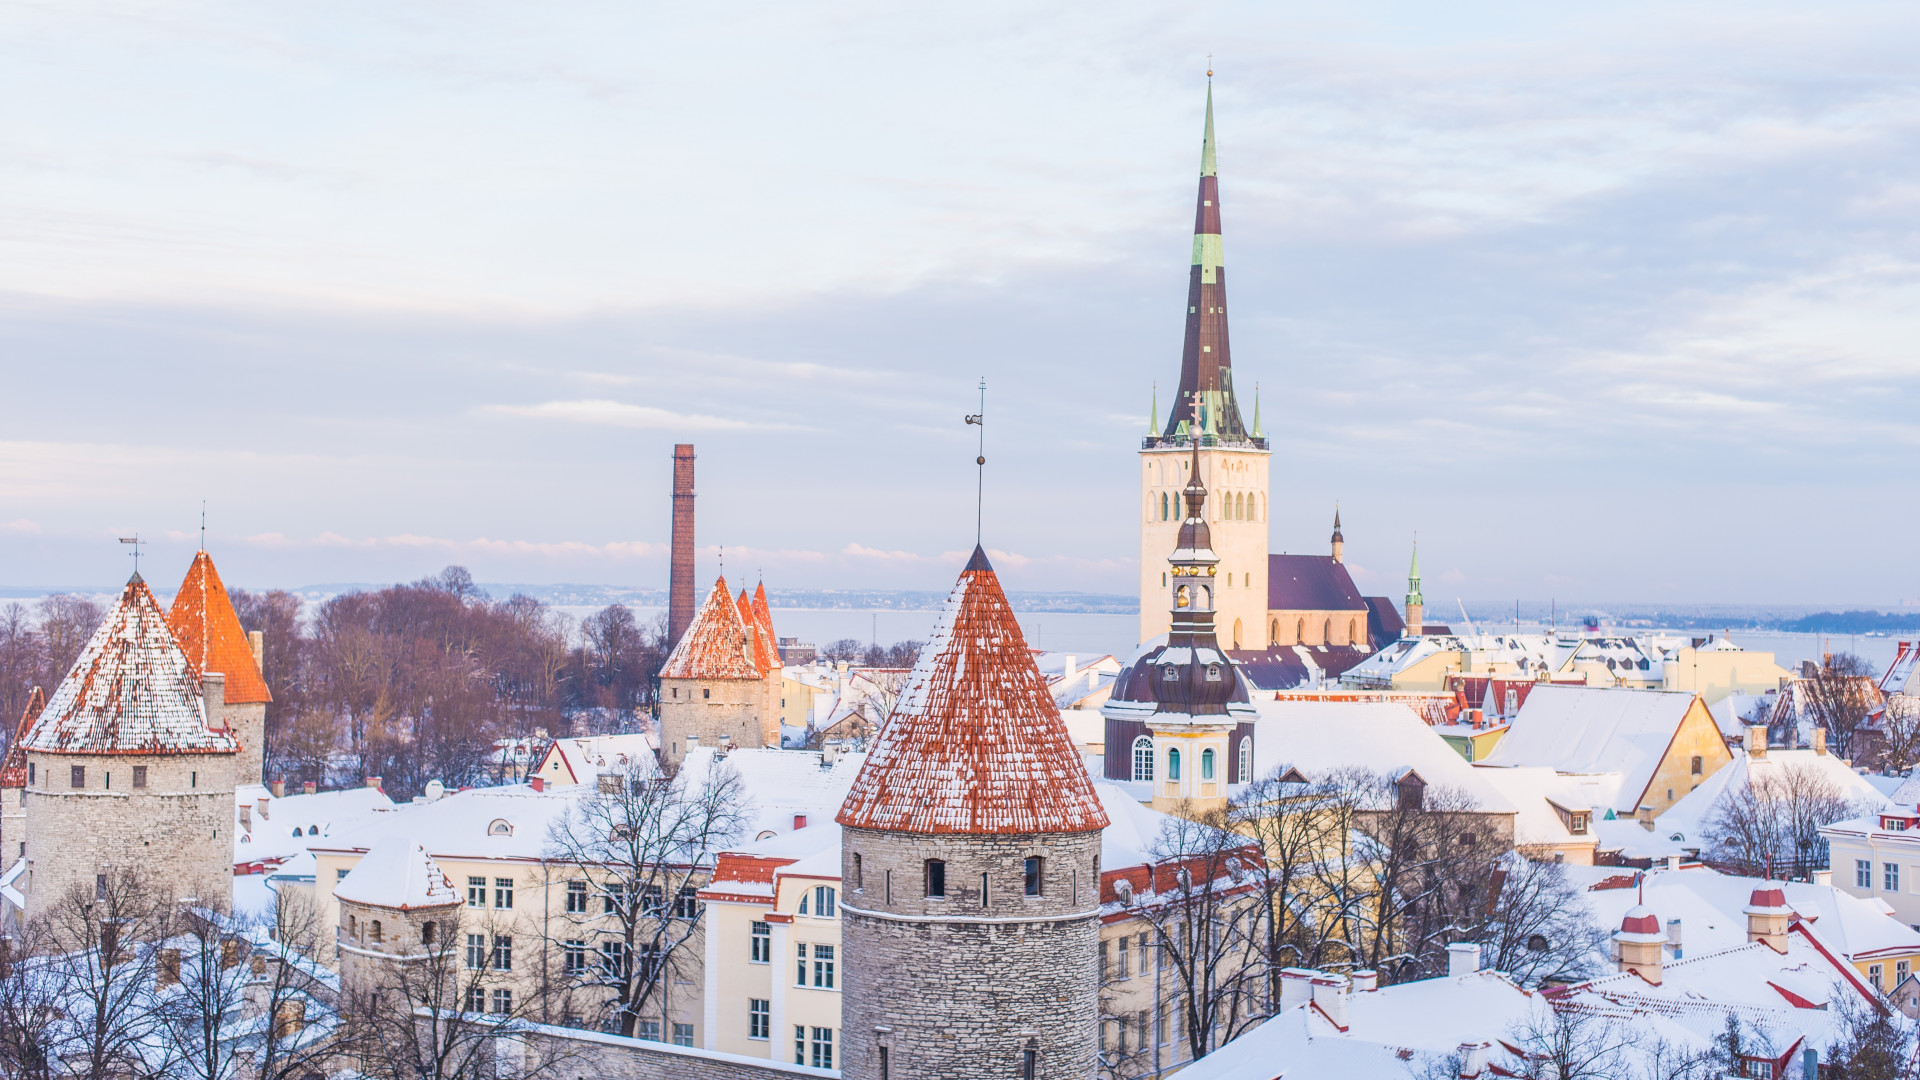 Snow covered old town of Tallinn in winter, the capital city of Estonia